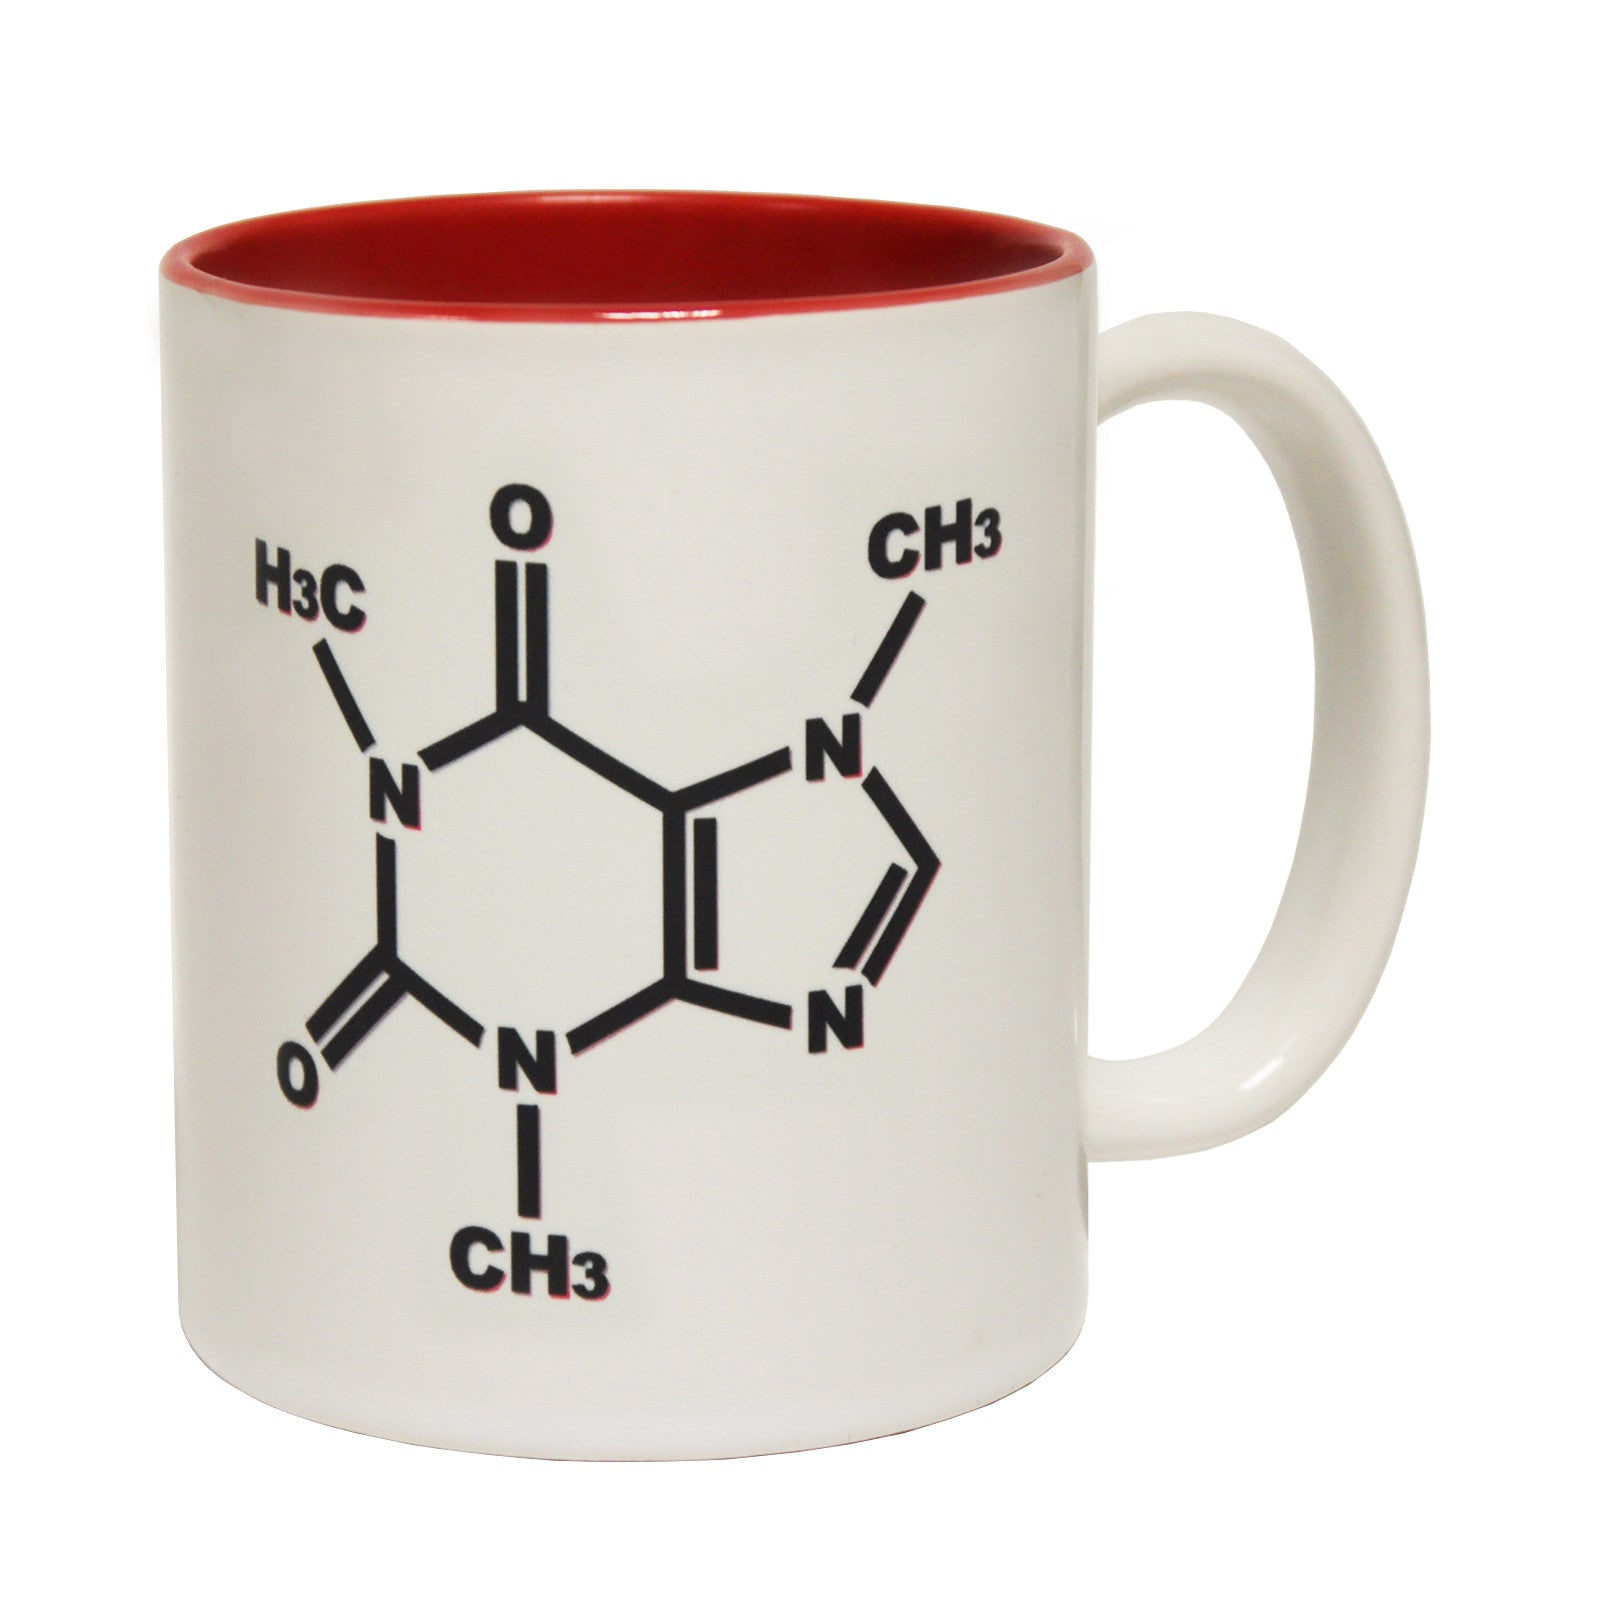 funny mugs Caffeine Chemical Structure Coffee Mug Addict Nerd Geek